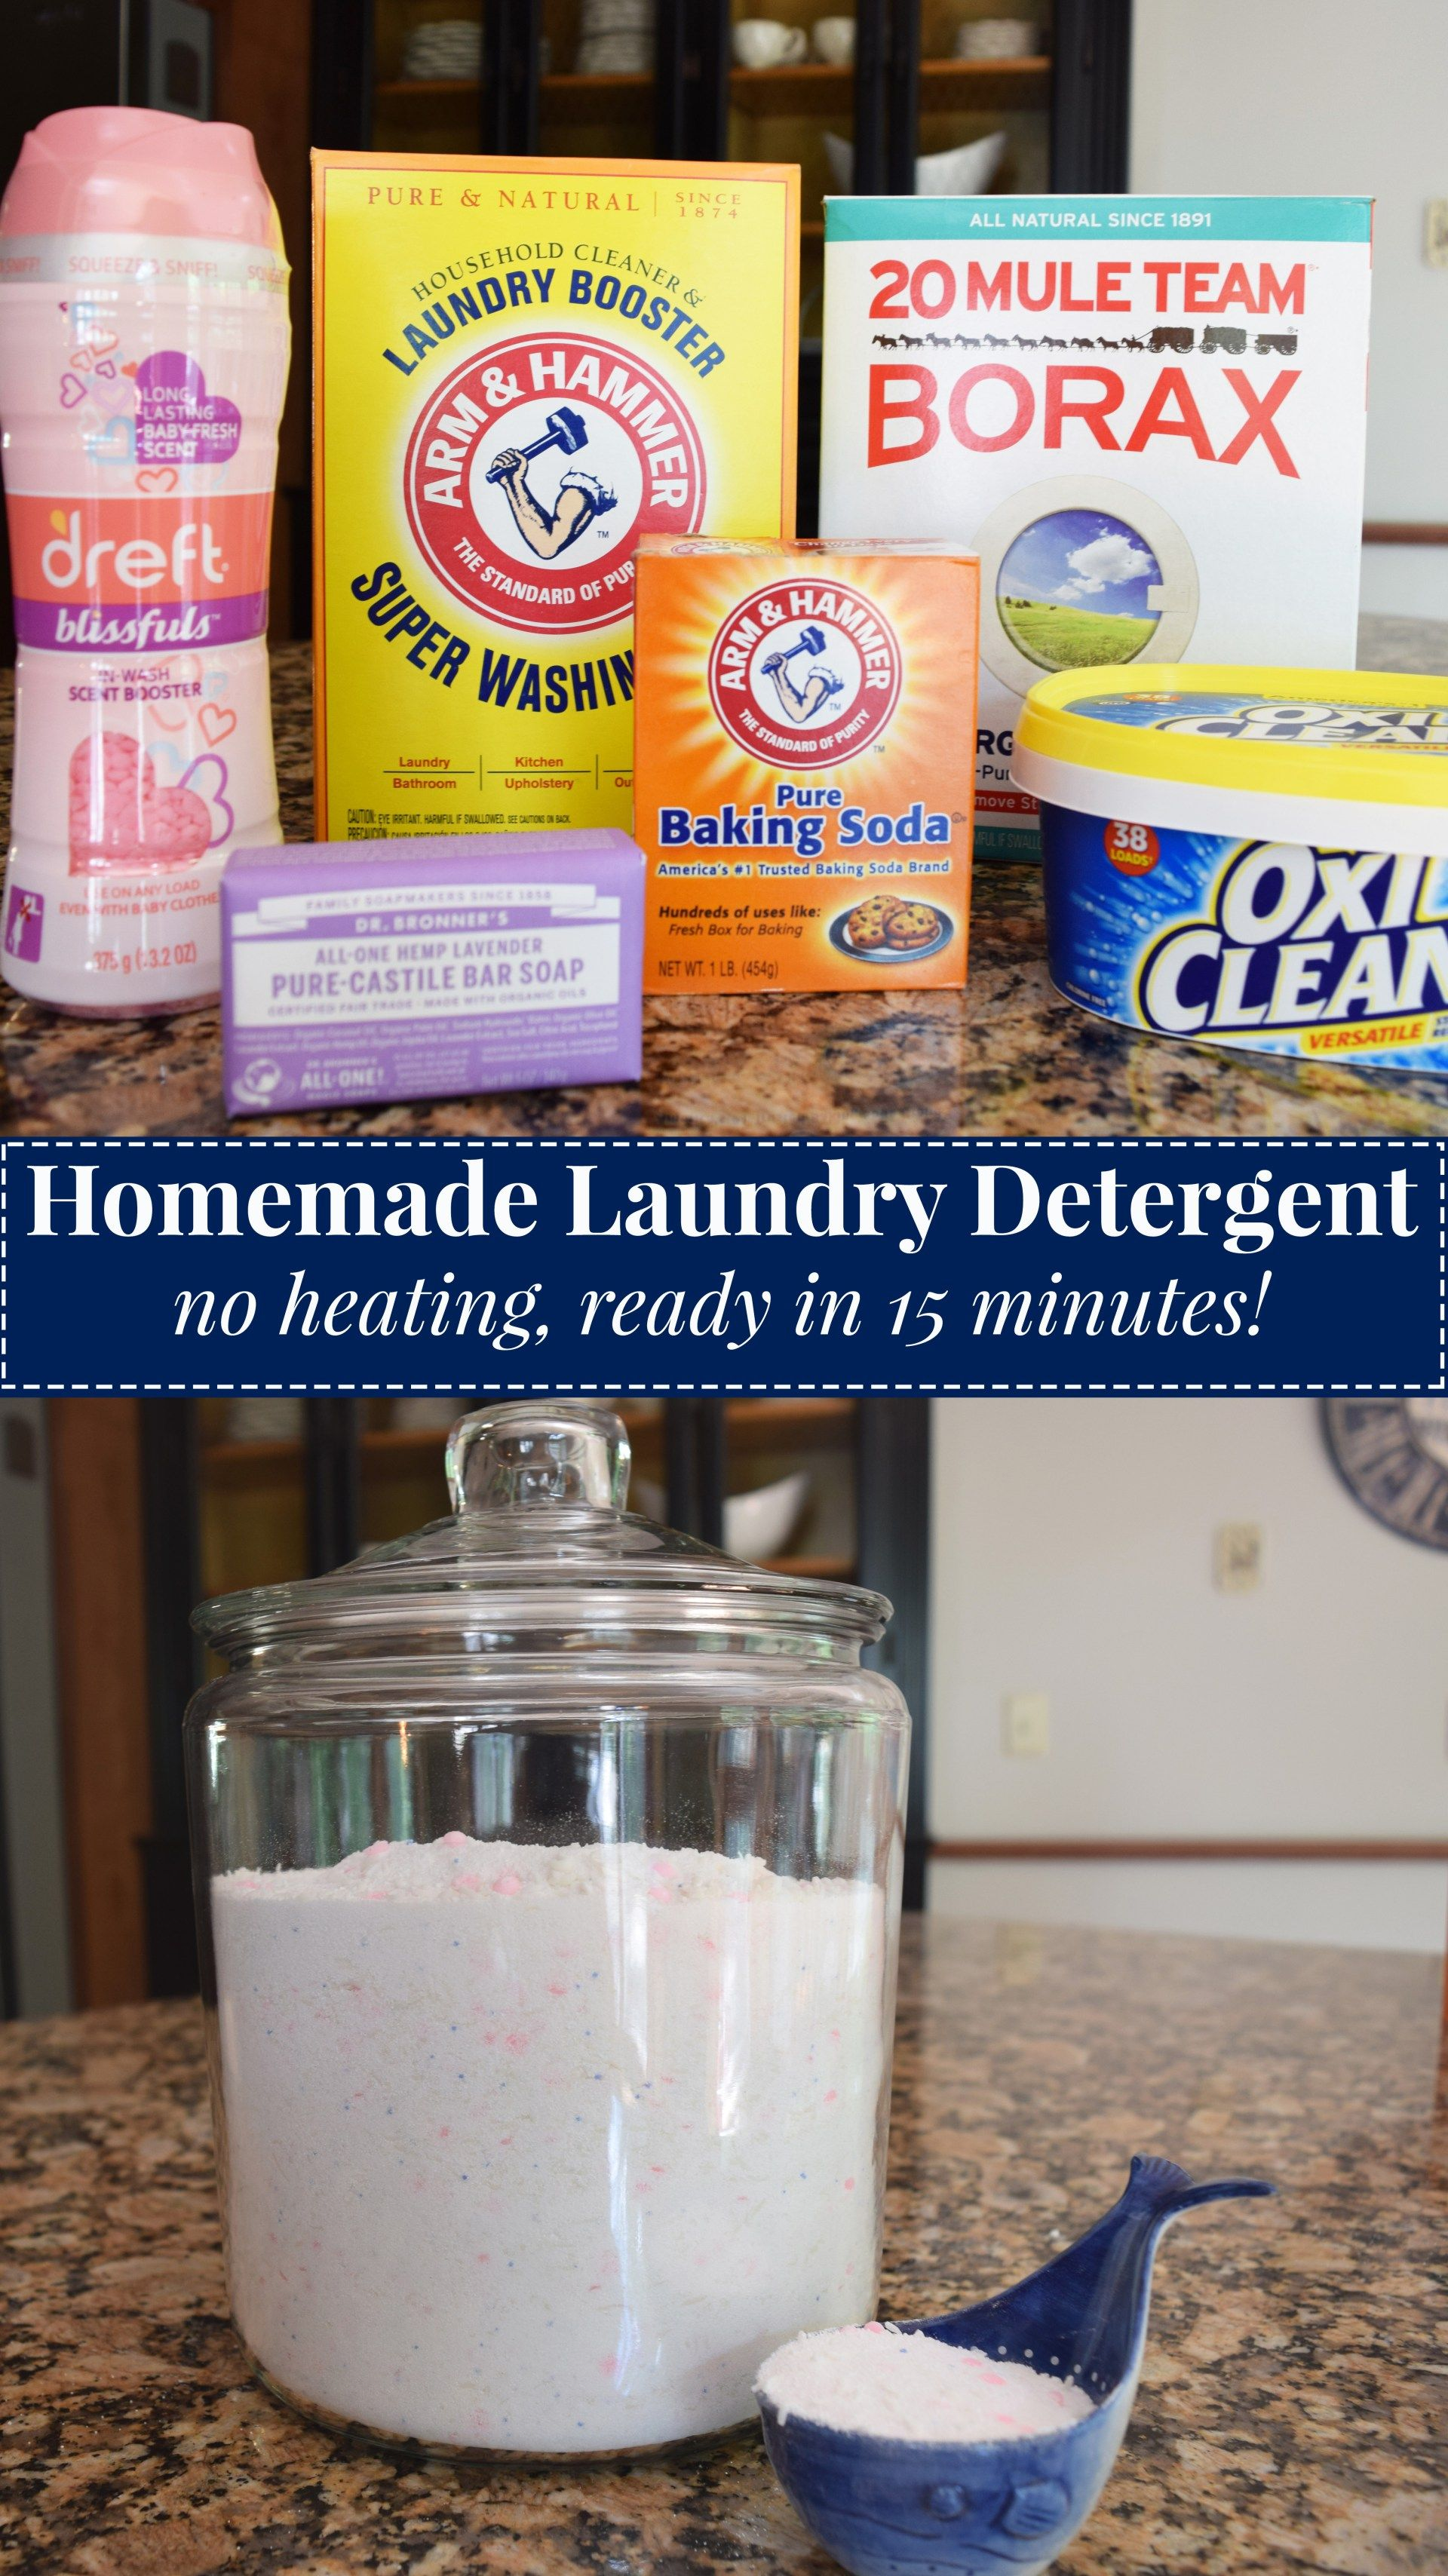 Homemade Laundry Detergent Easy Ready In 15 Minutes